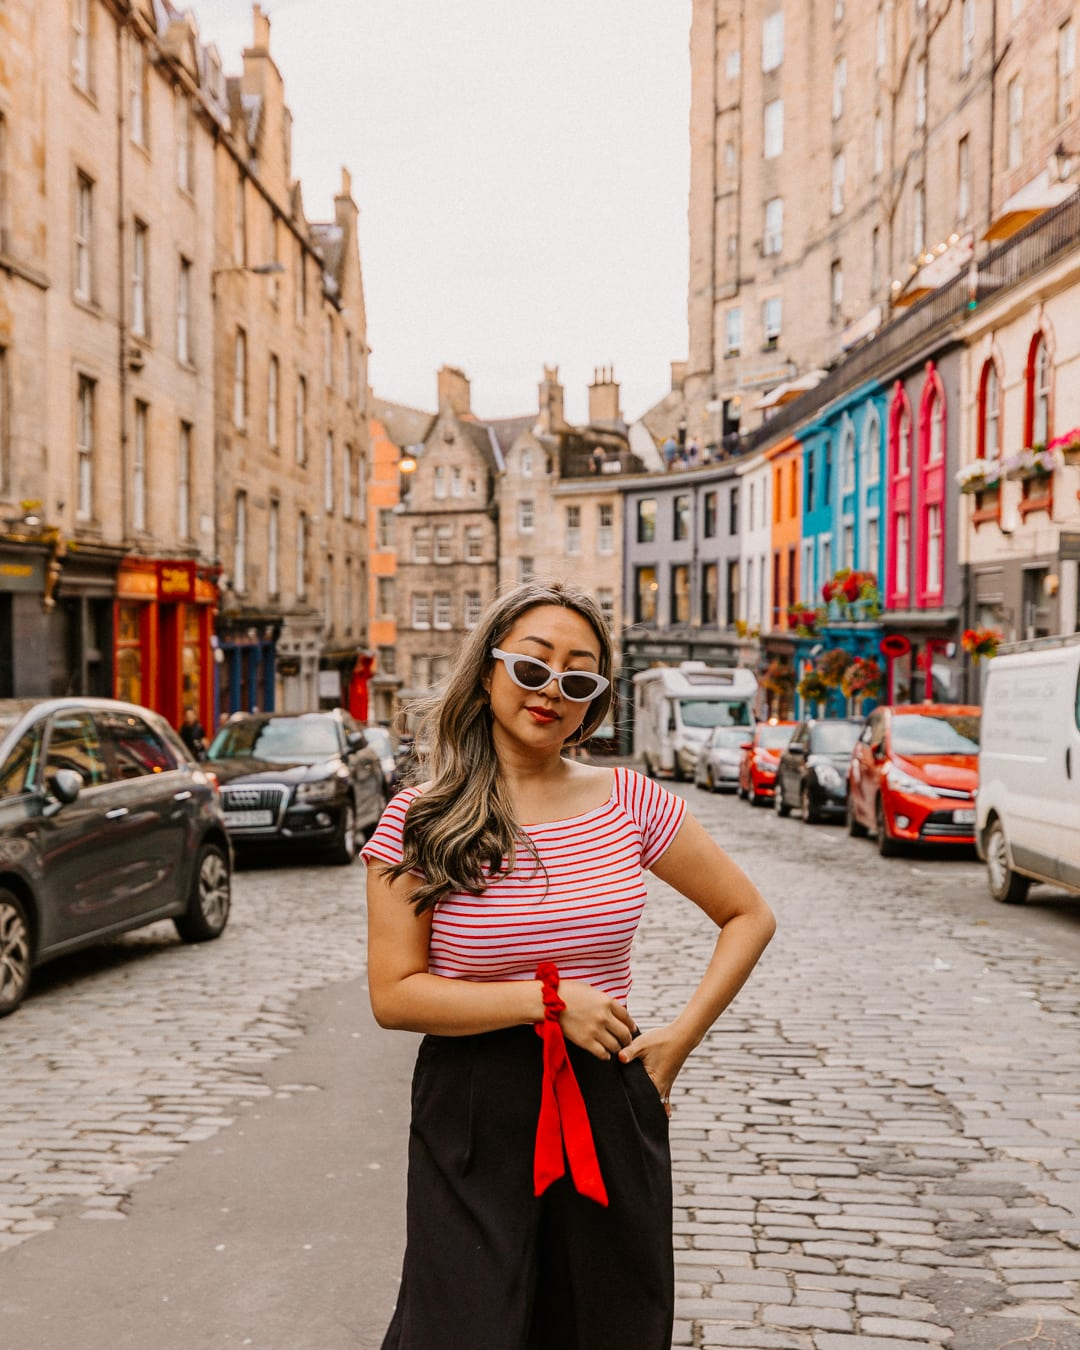 Victoria street, one of the most Instagrammable places in Edinburgh